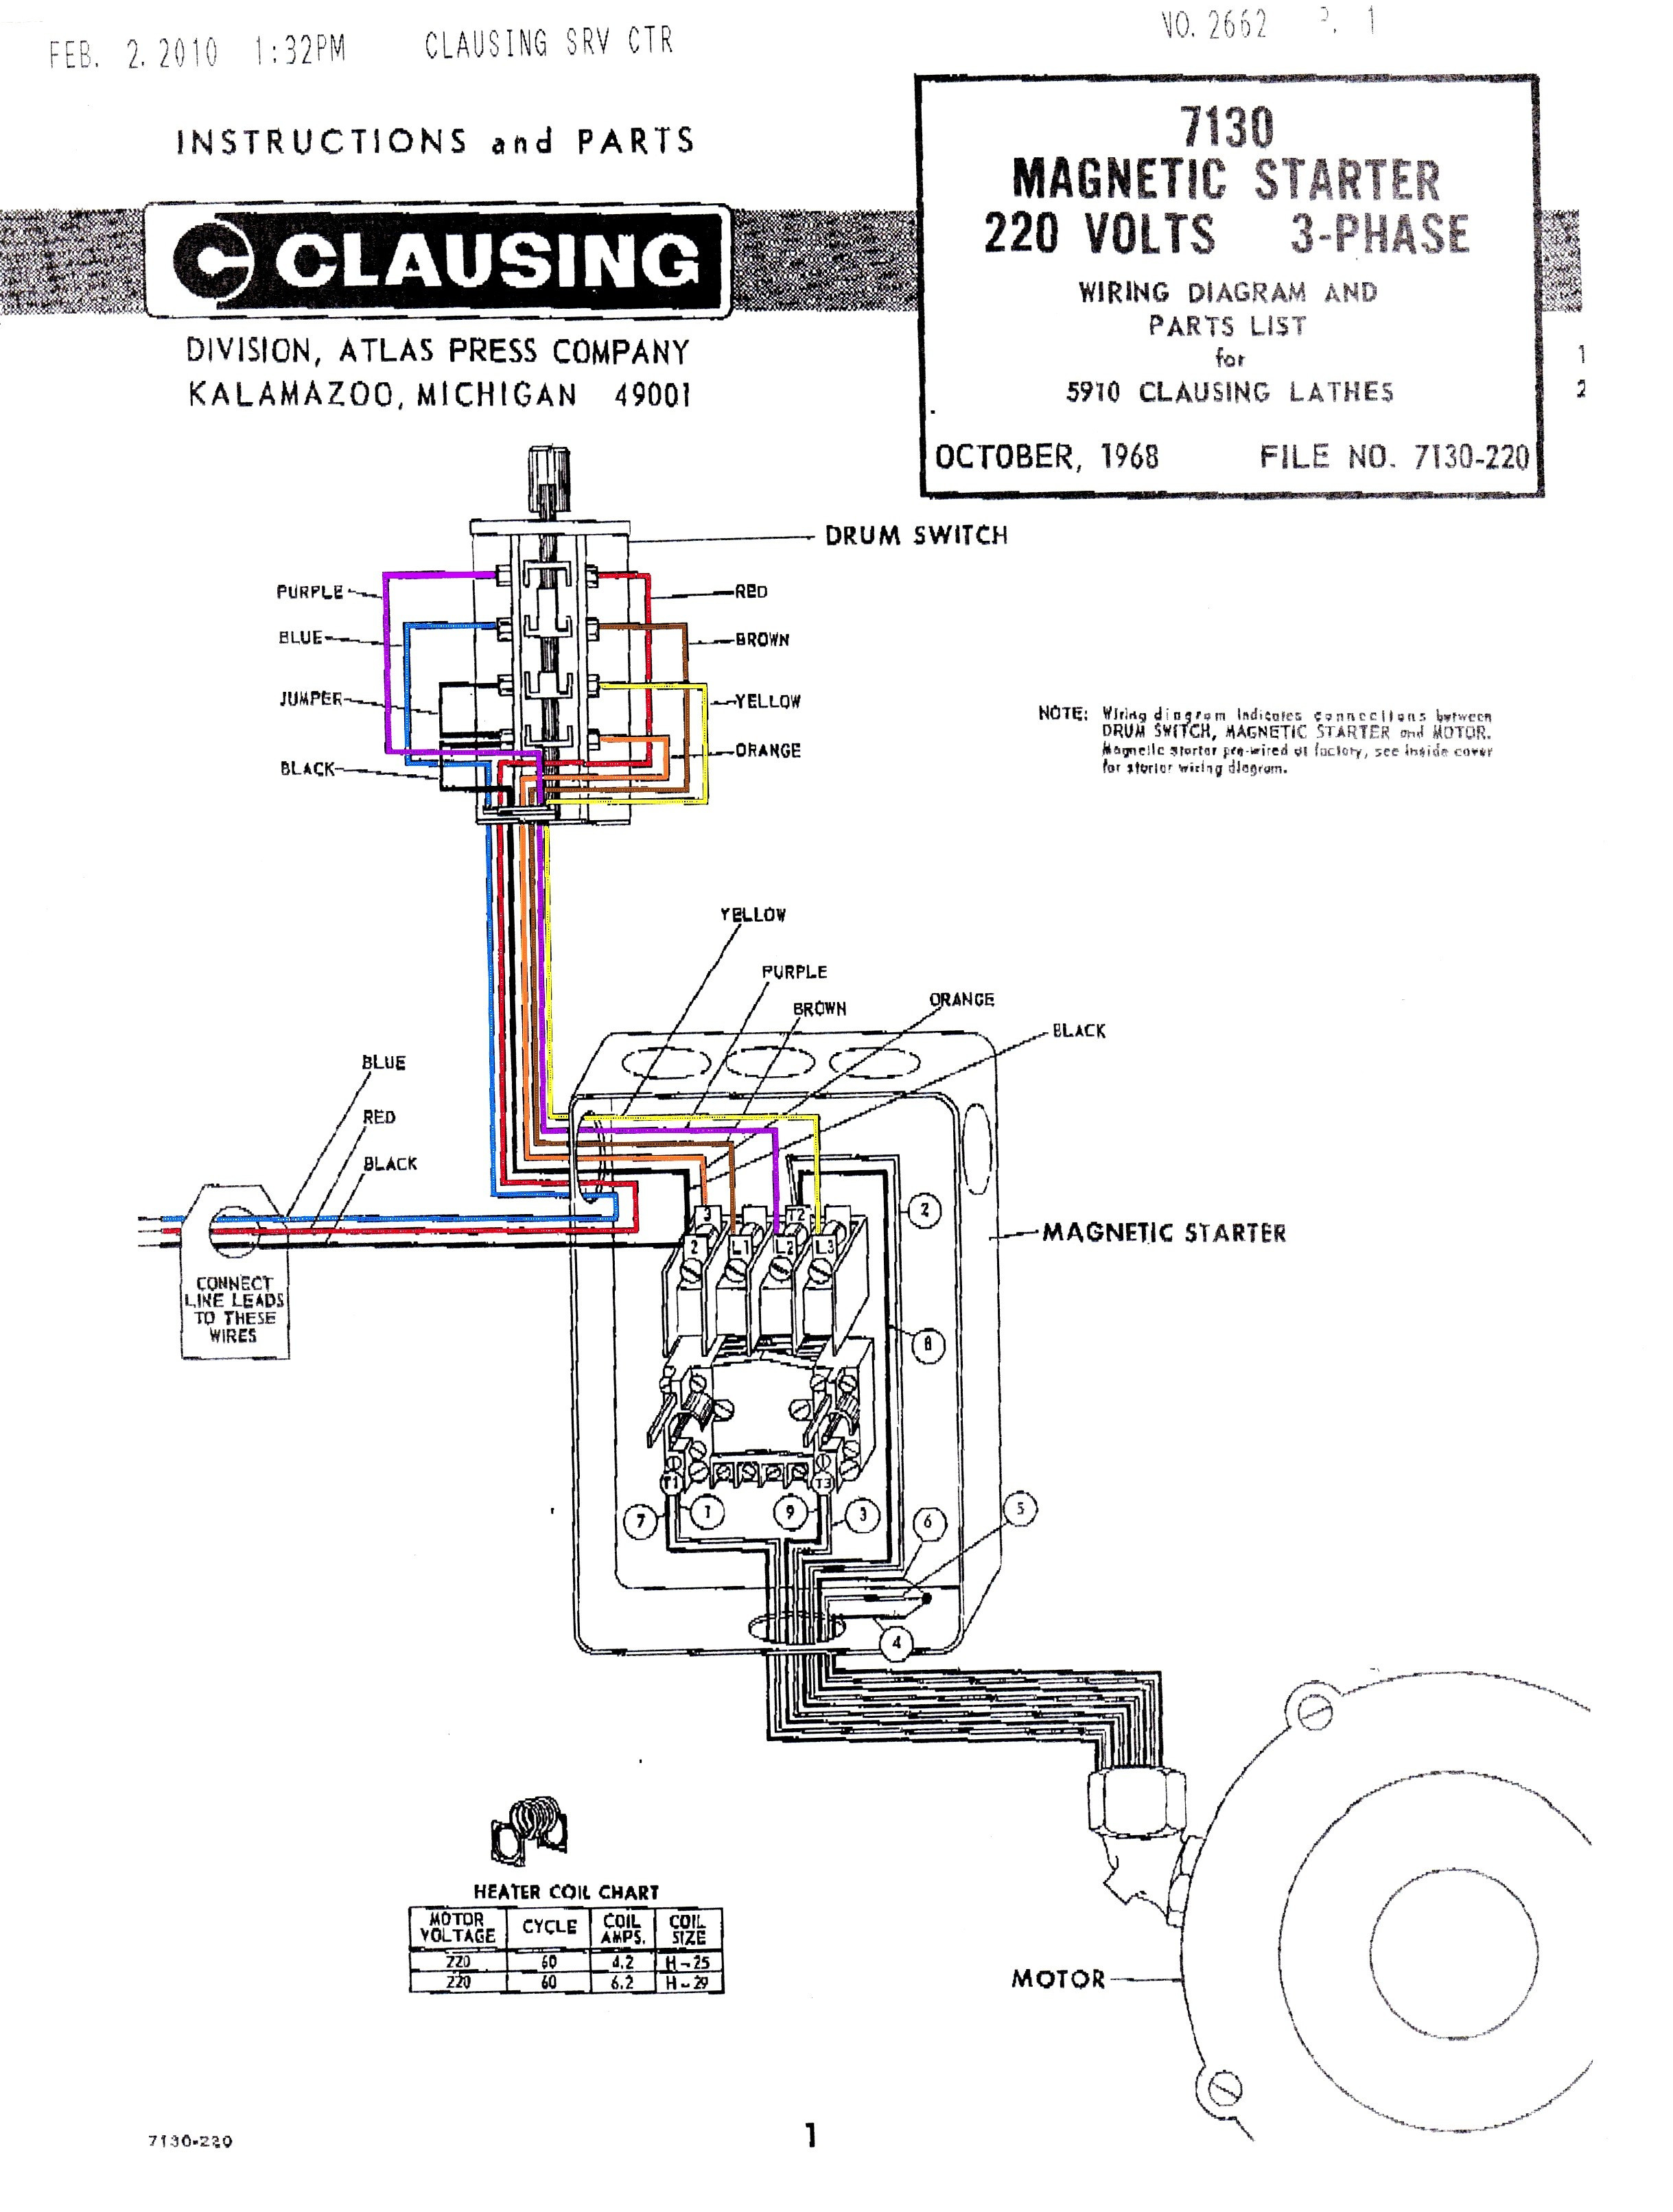 small resolution of srv wiring diagram wiring diagram srv wiring diagram electrical wiring diagram3 phase switch wiring diagram free